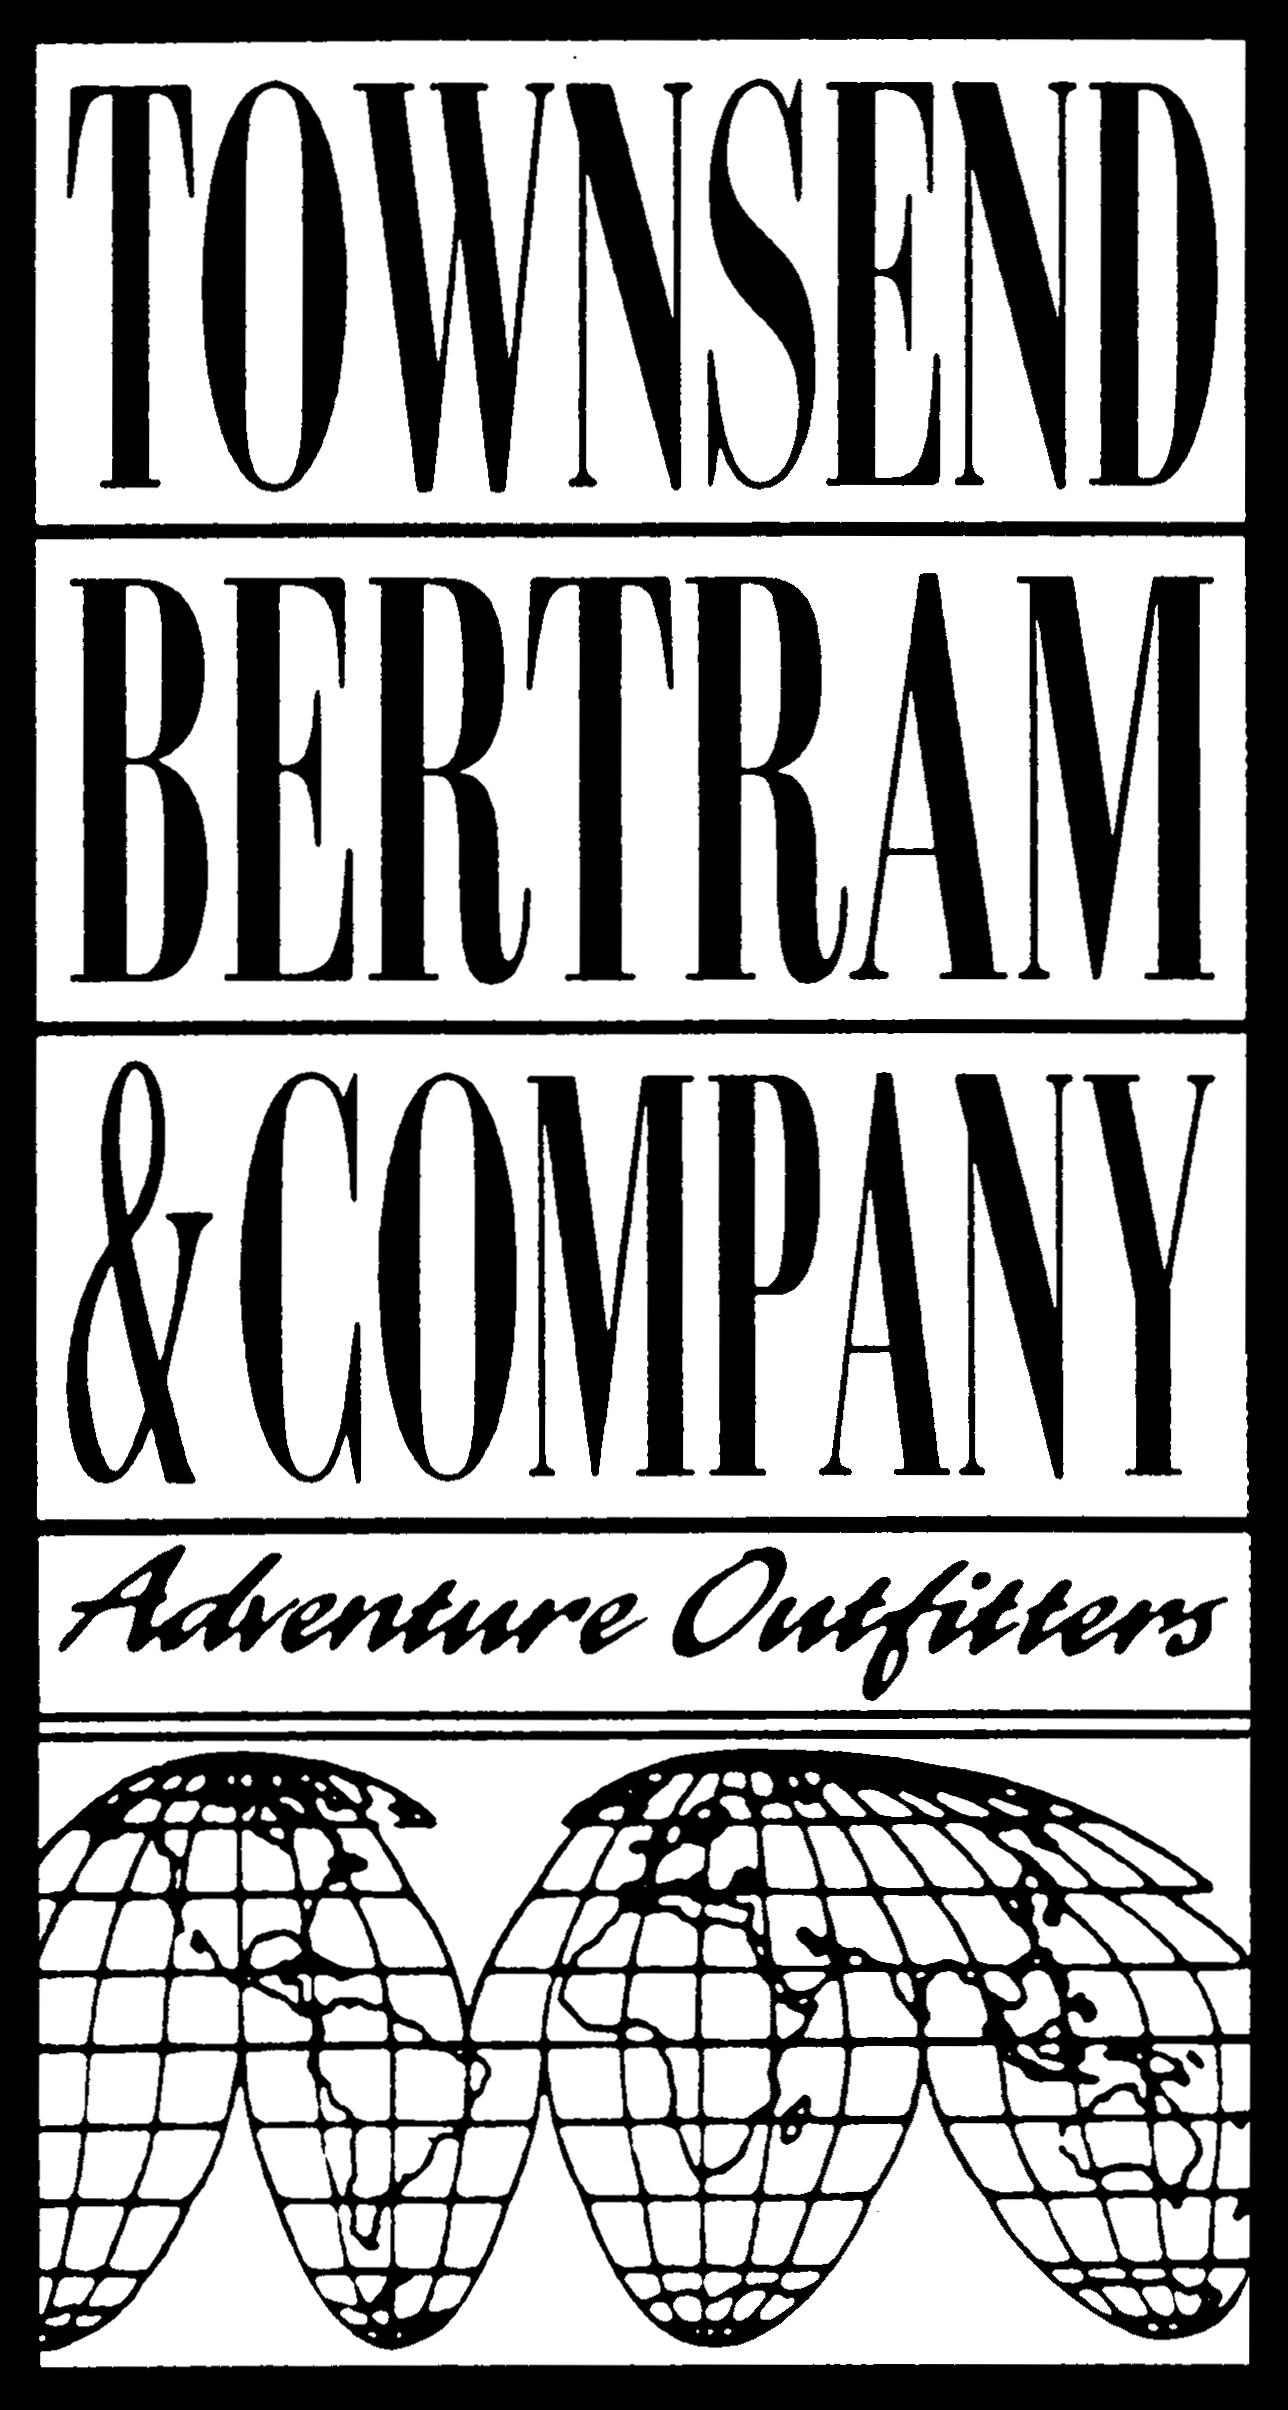 GOODtownsend bertram logo